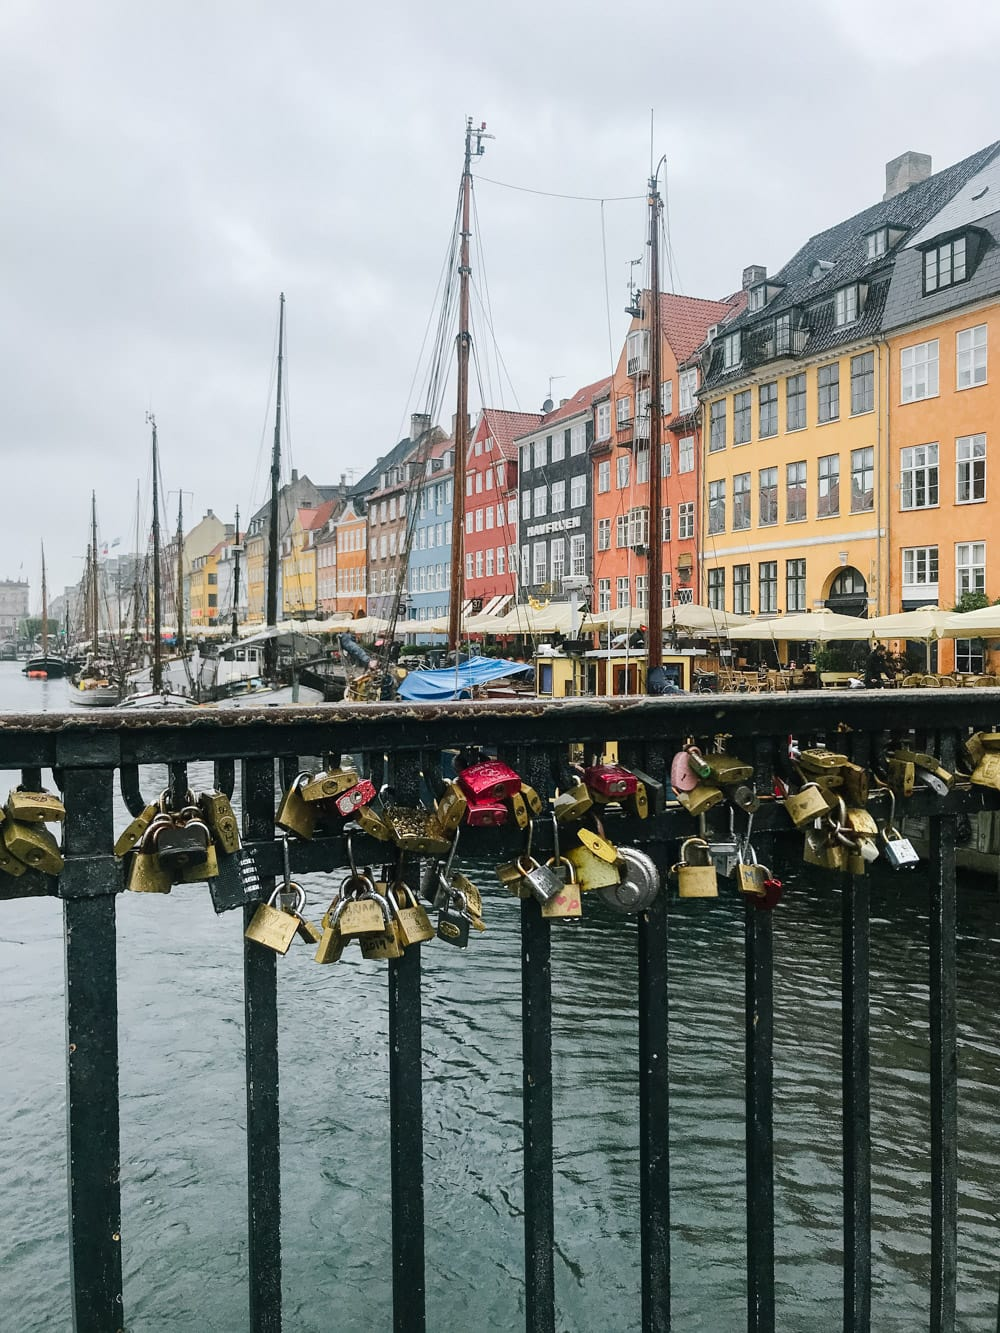 Lock bridge in Copenhagen